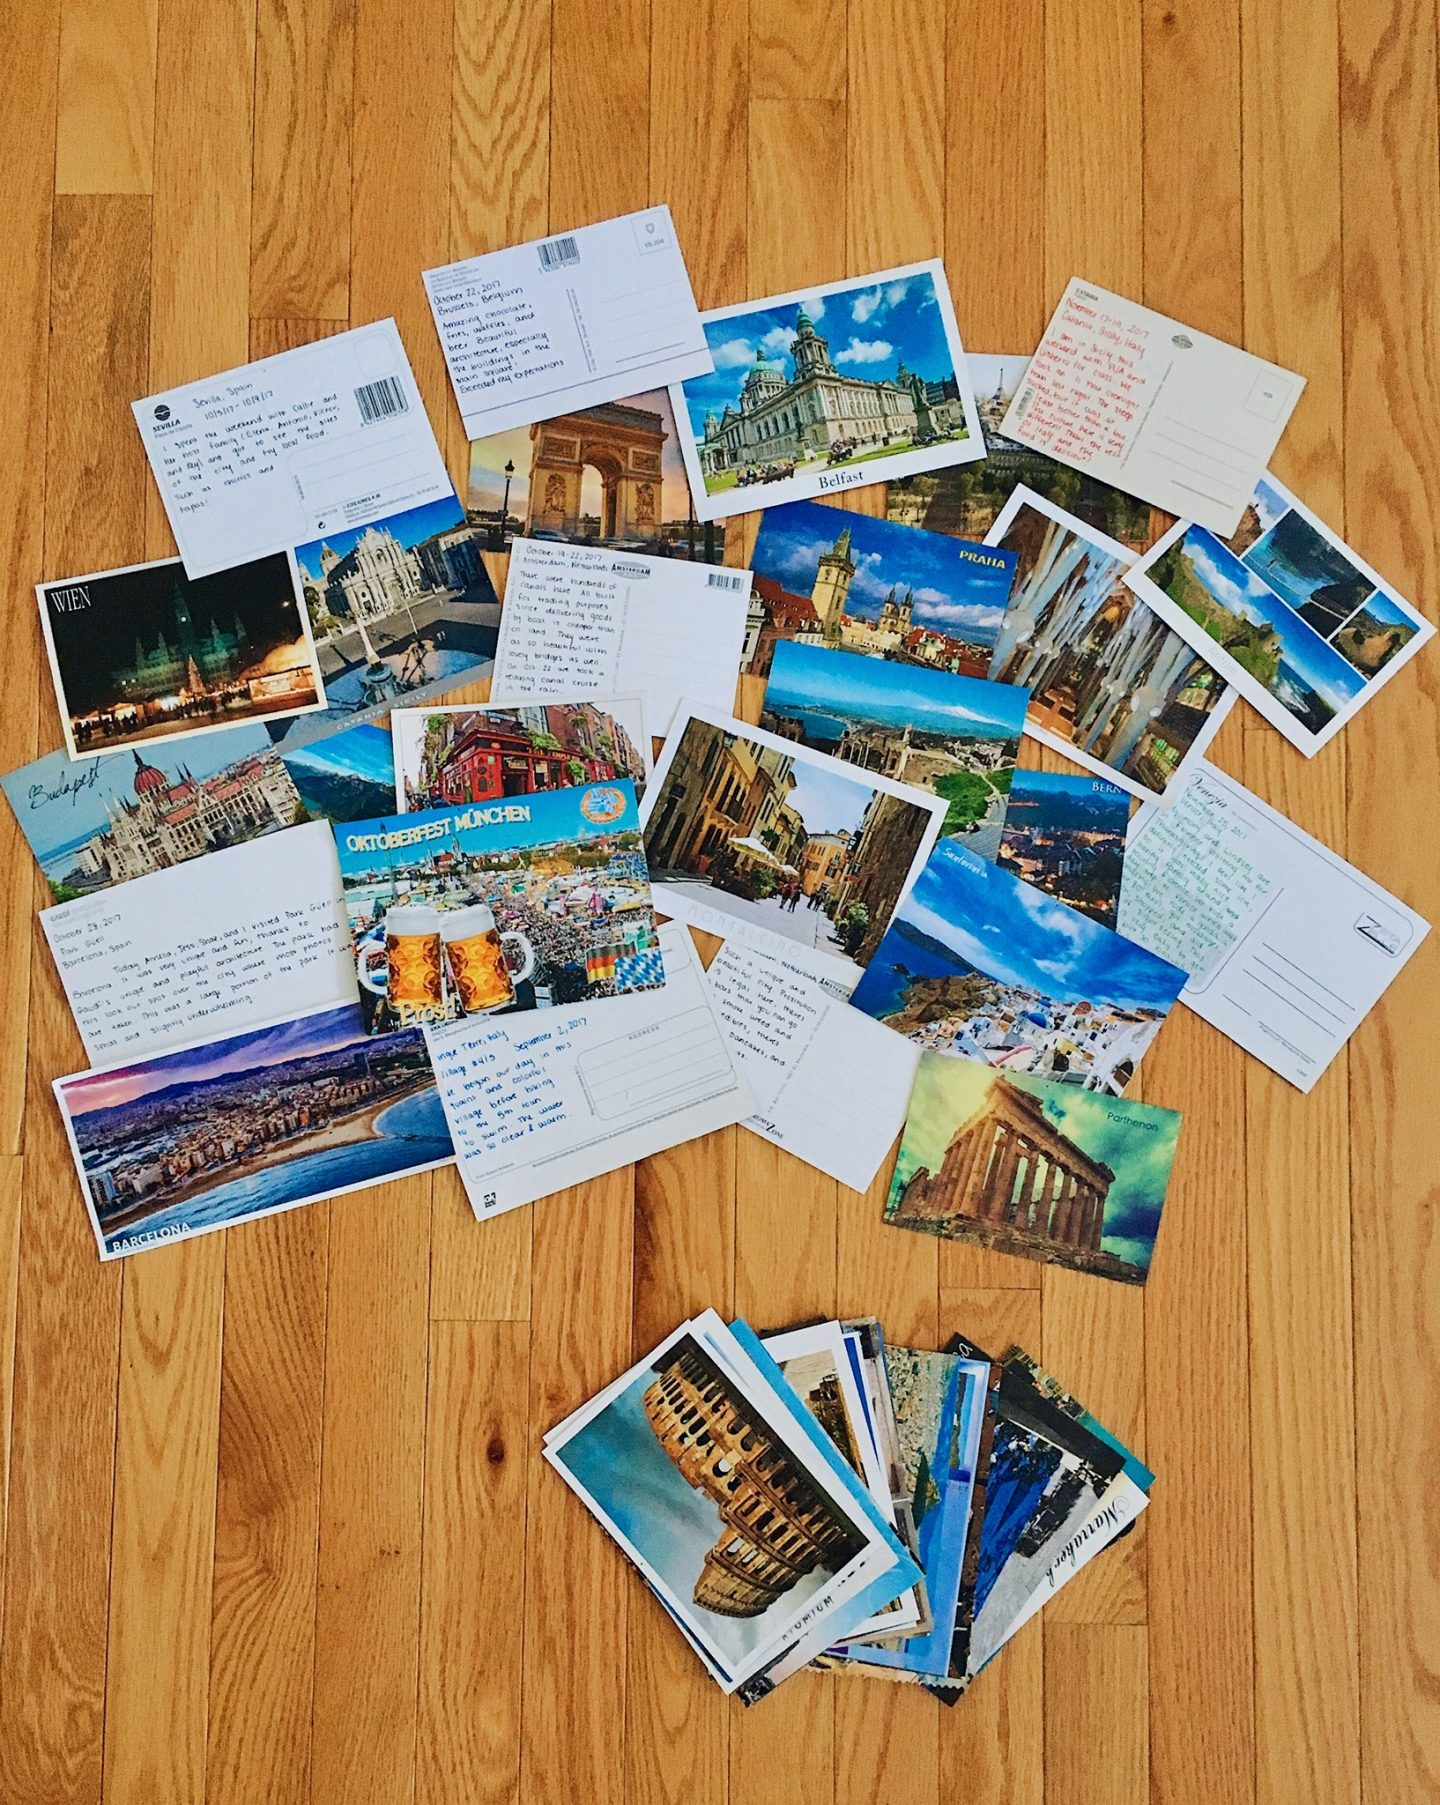 My postcards with handwritten messages on the back!